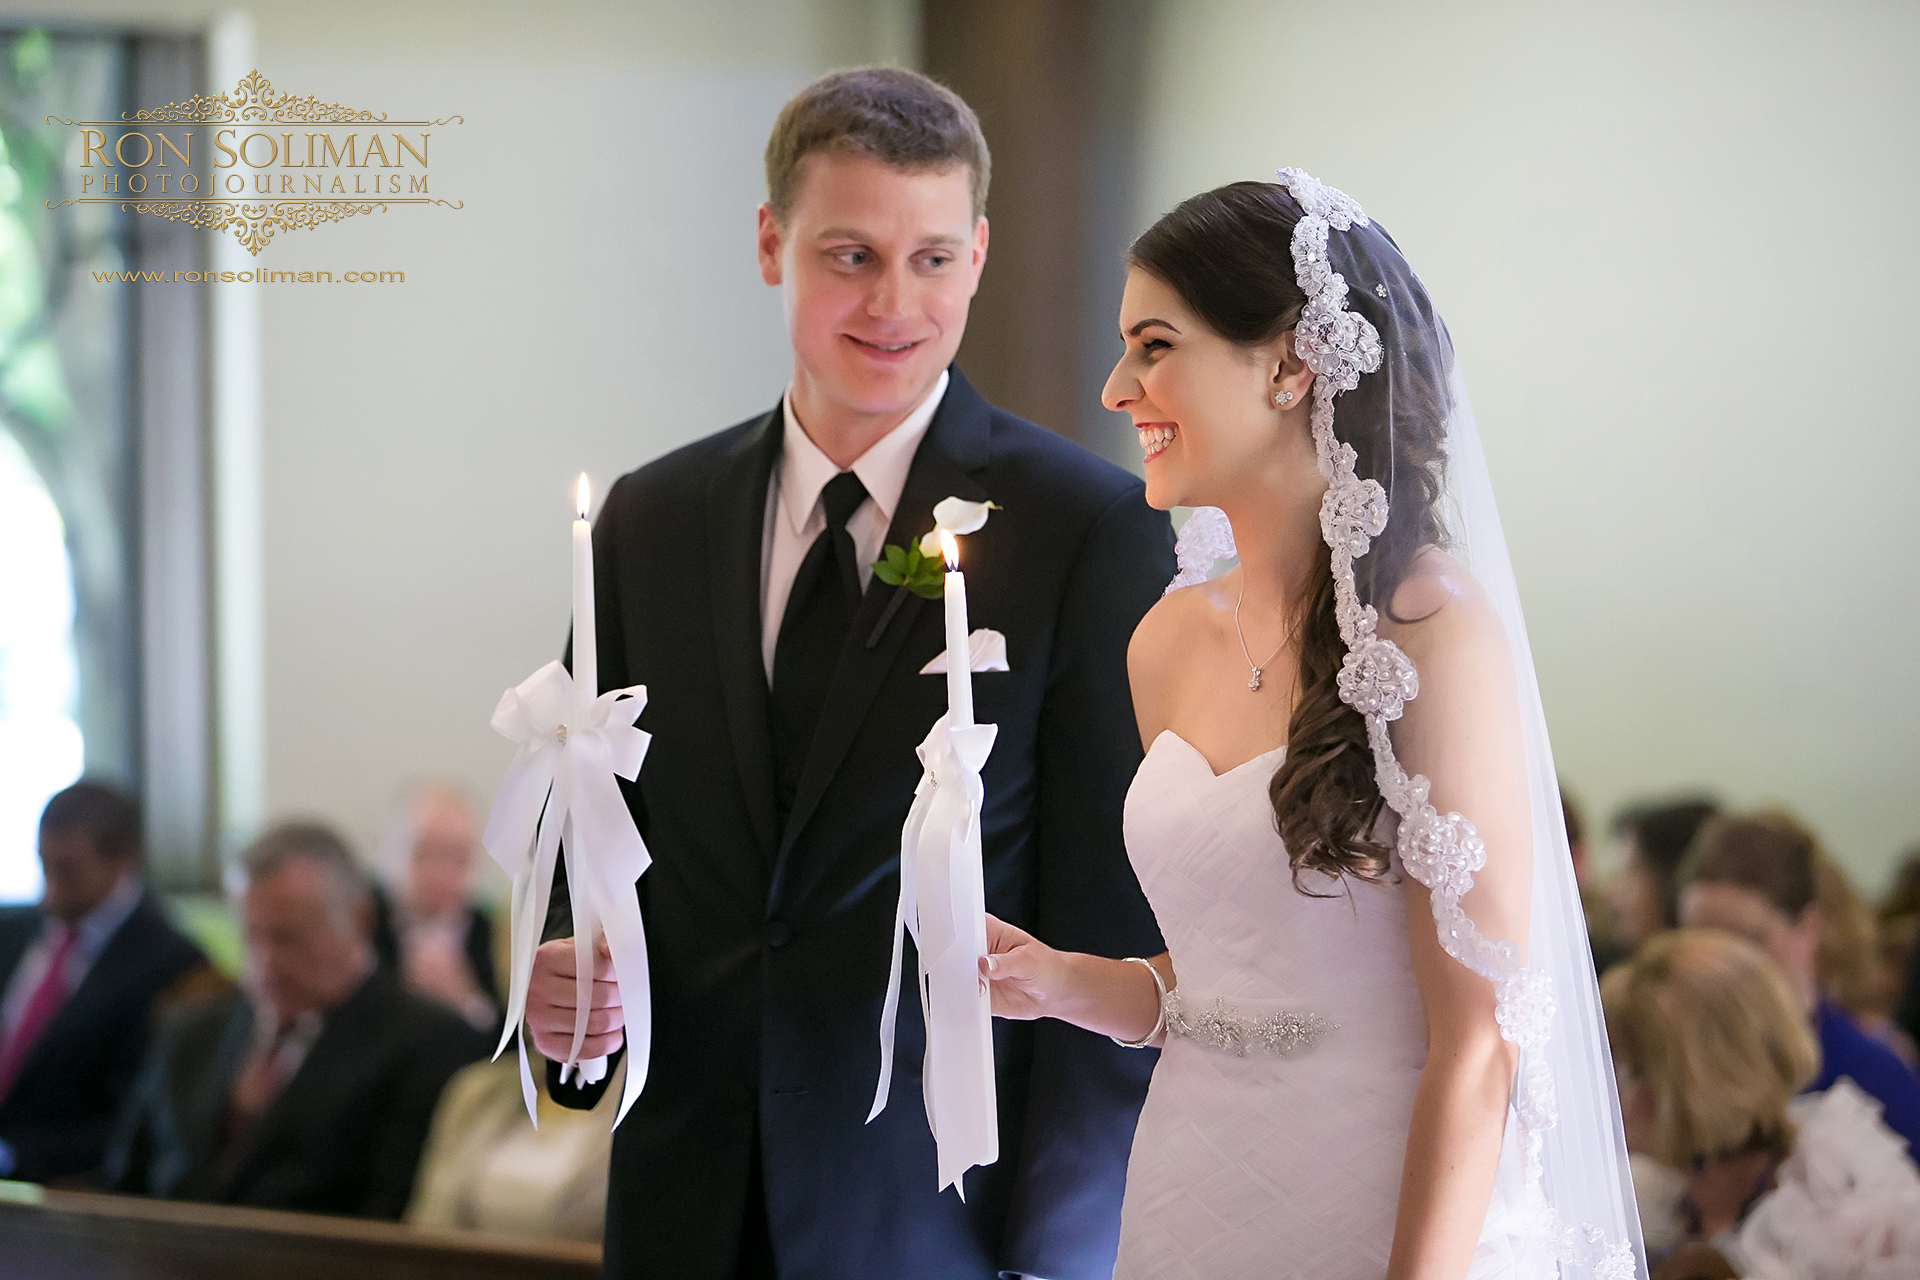 The Greek Orthodox Church Of Saint George wedding